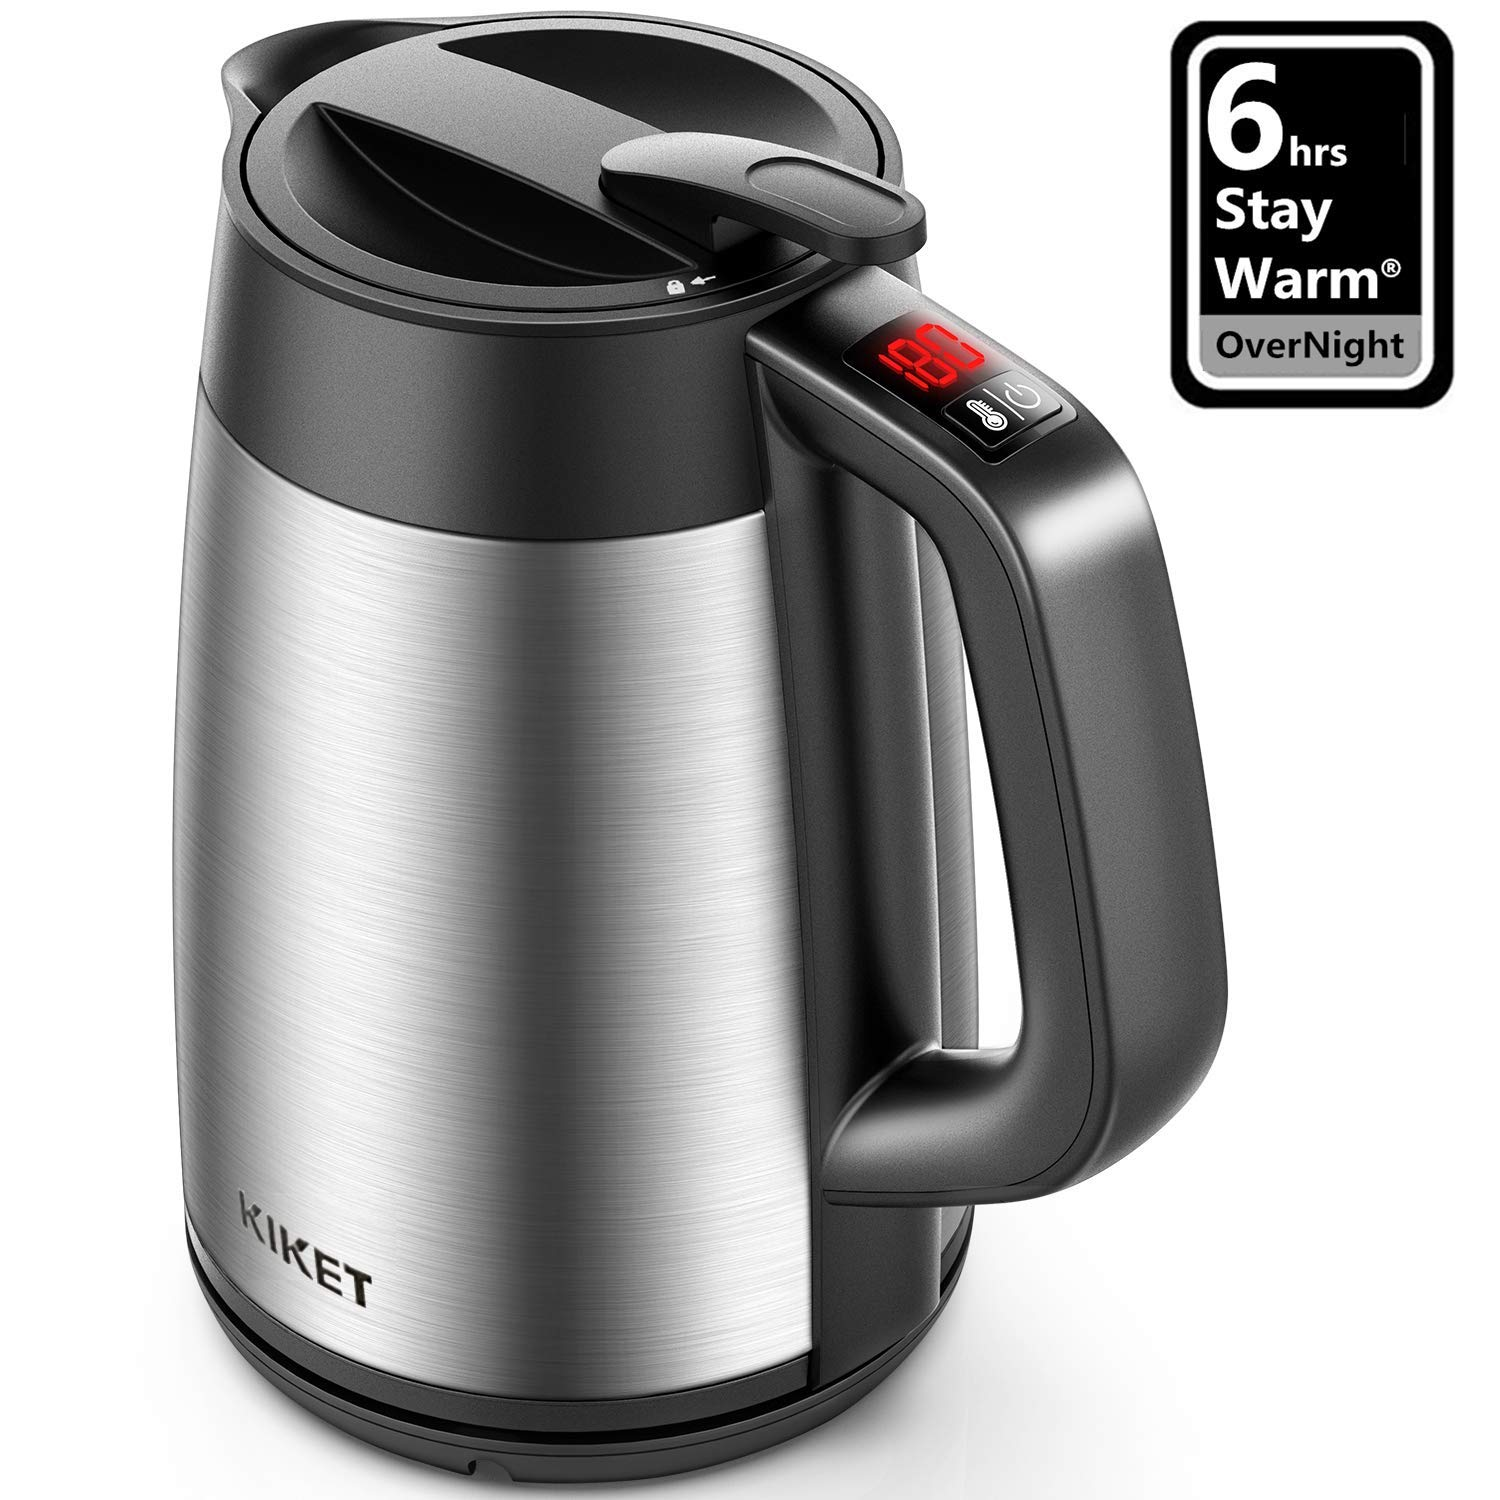 Electric Kettle Temperature Control Insulation Electric Tea Kettle for Overnight Keep Warm, 1.7L Cool Touch Water Kettle with Food Grade 304 Stainless Steel and 1500W Rapid Boil System, BPA free, KiKet